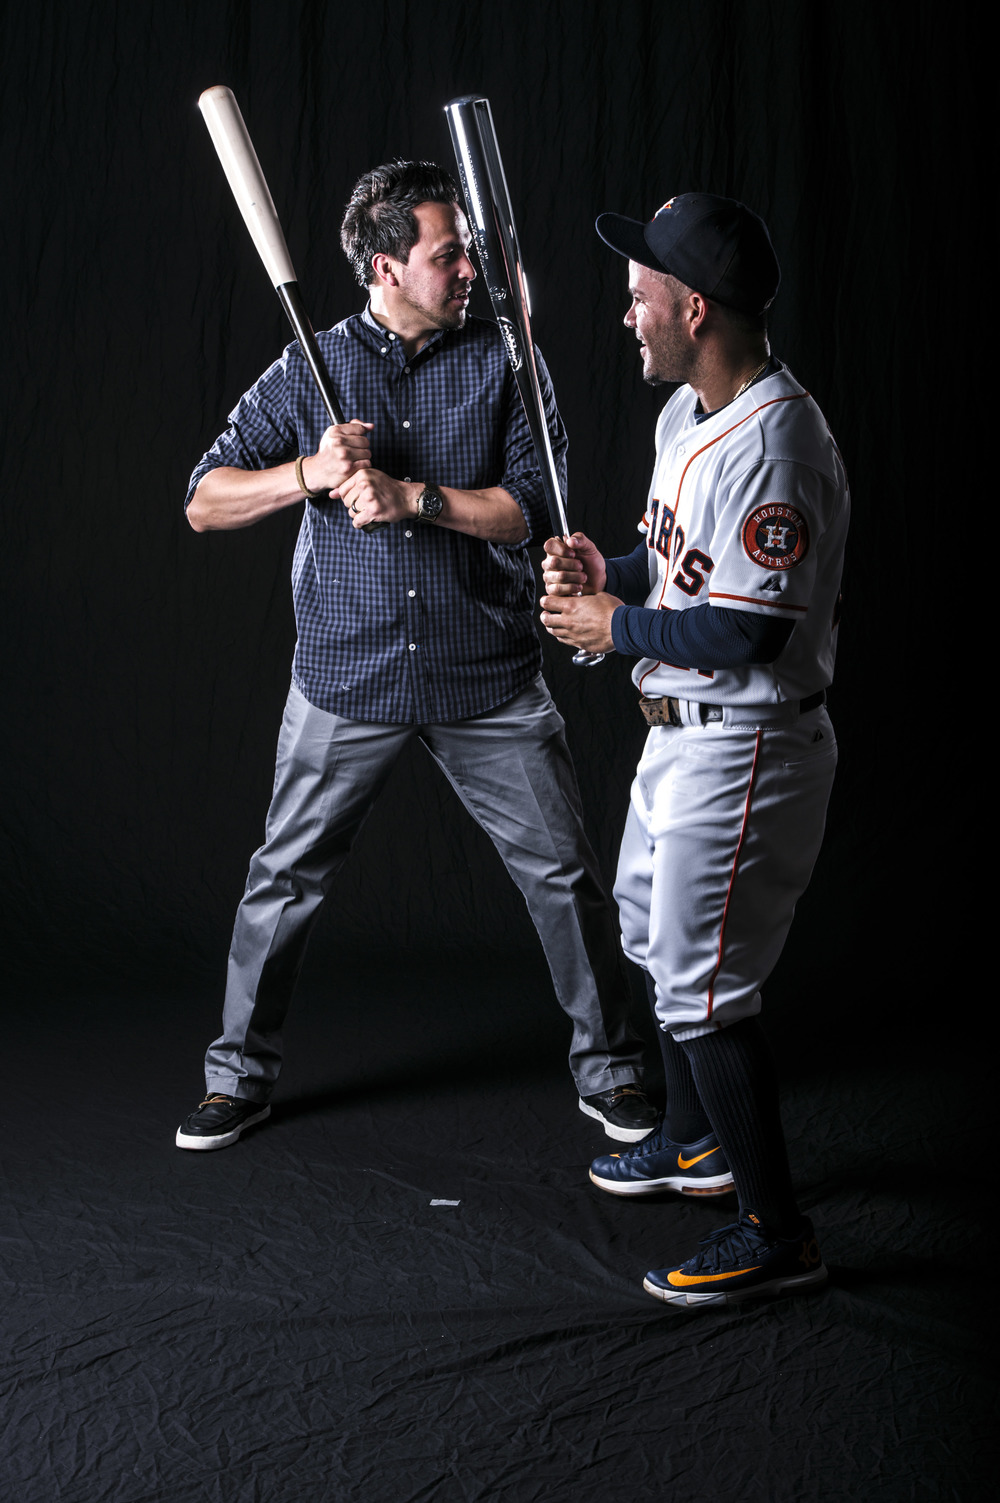 ASTROS-PHOTOS-PS-2015PS-JoseAltuve-1.jpg